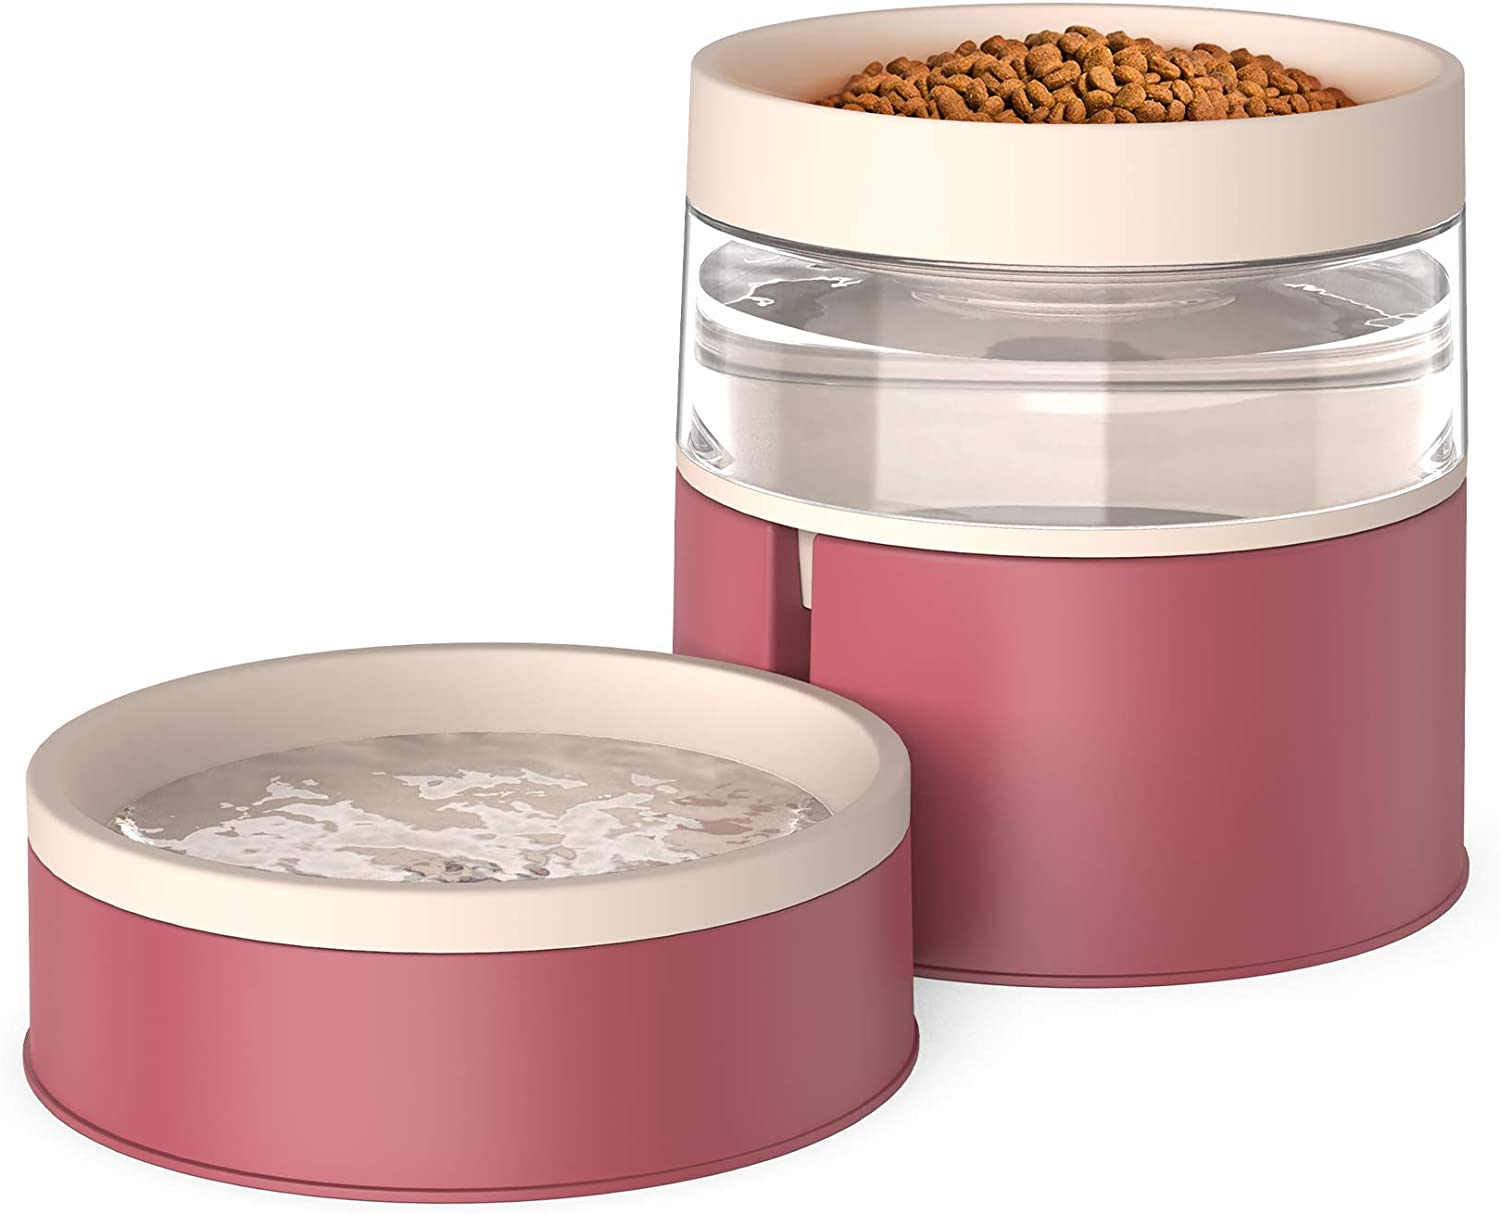 KALUDYA Double Dog Cat Bowls - 2 in 1 Automatic Pet Feeder,Detachable Gravity Water Dispenser and Food Bowl Set for Cats/ Puppies,Upgrade Design Anti Vomiting Raised Cat Bowls-Red